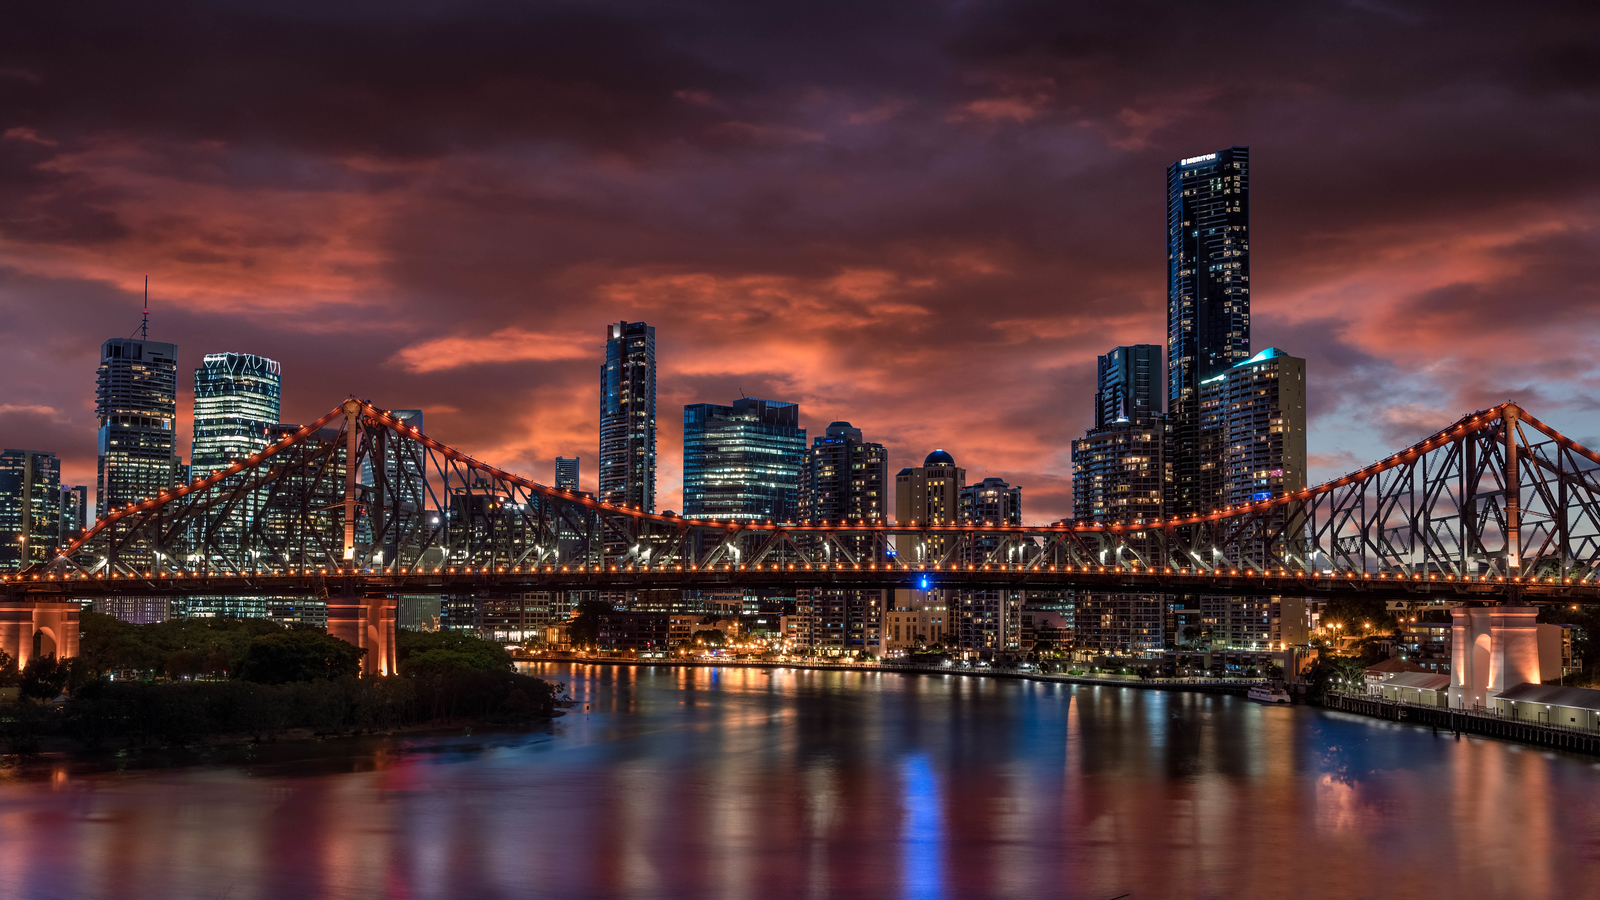 Brisbane, Australia at night